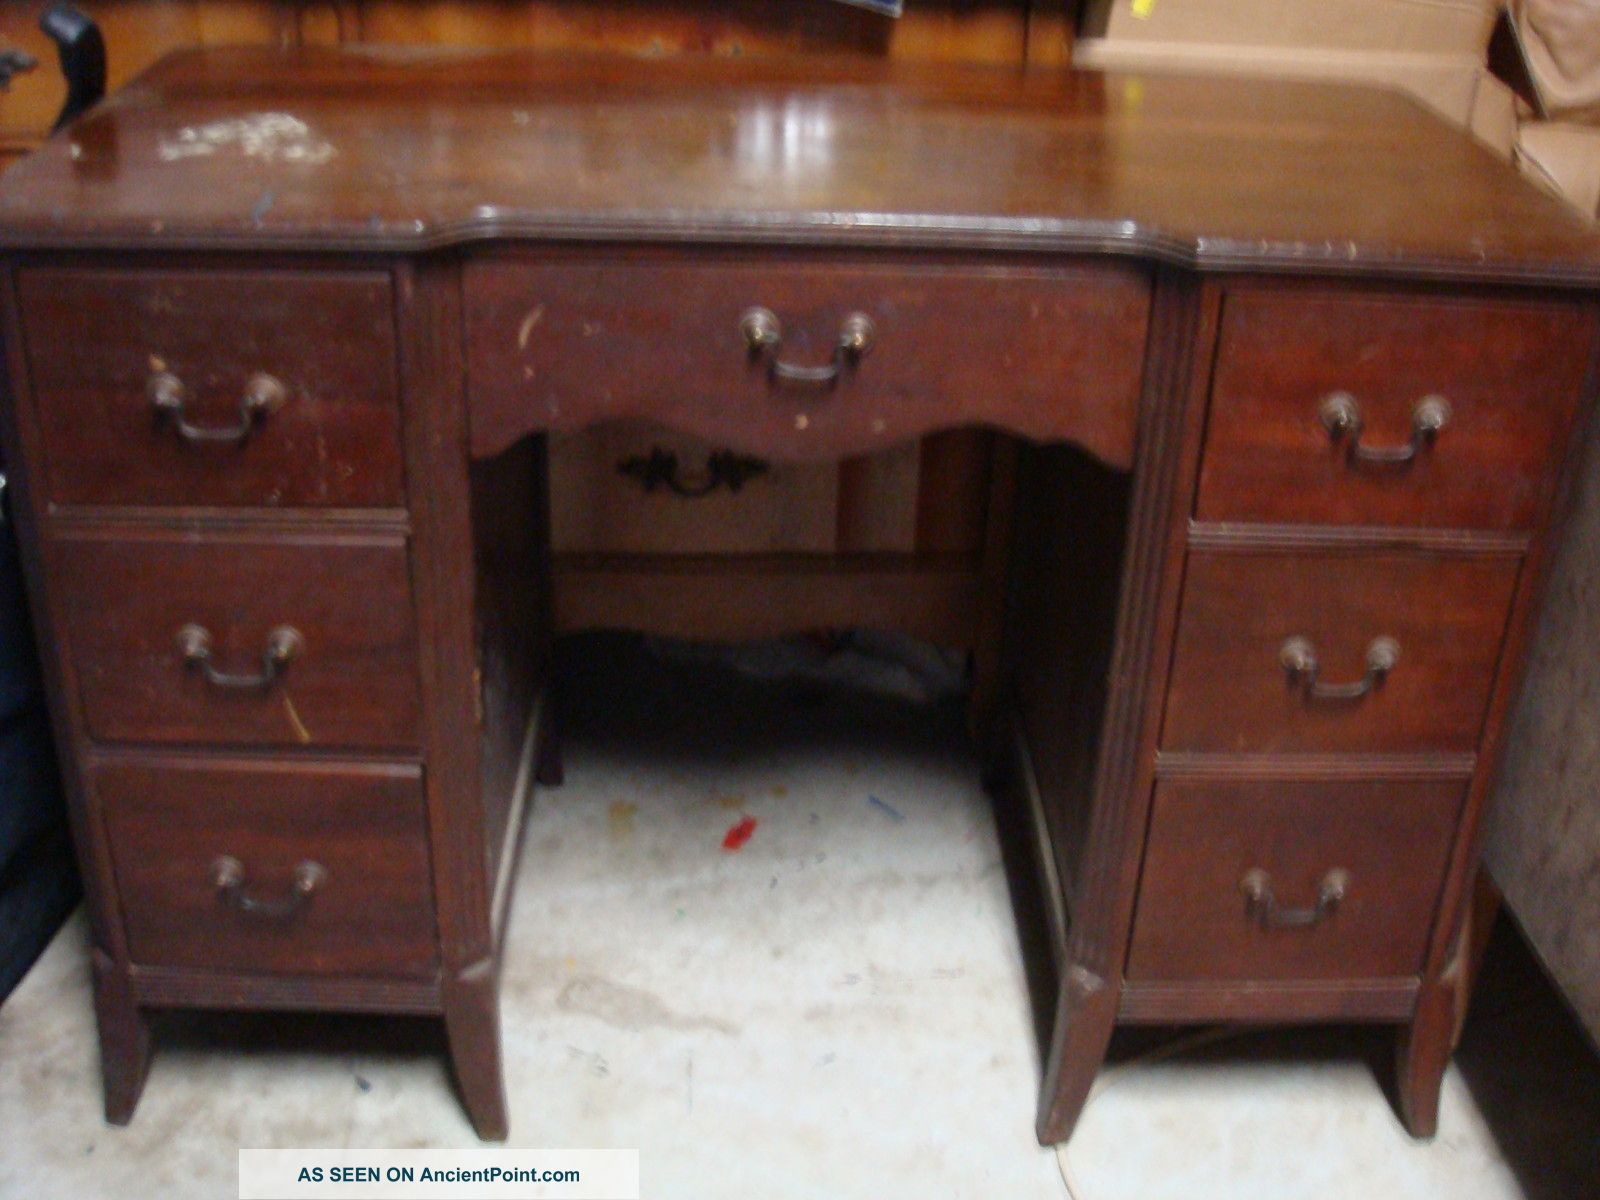 Pin Antique Desk On Pinterest